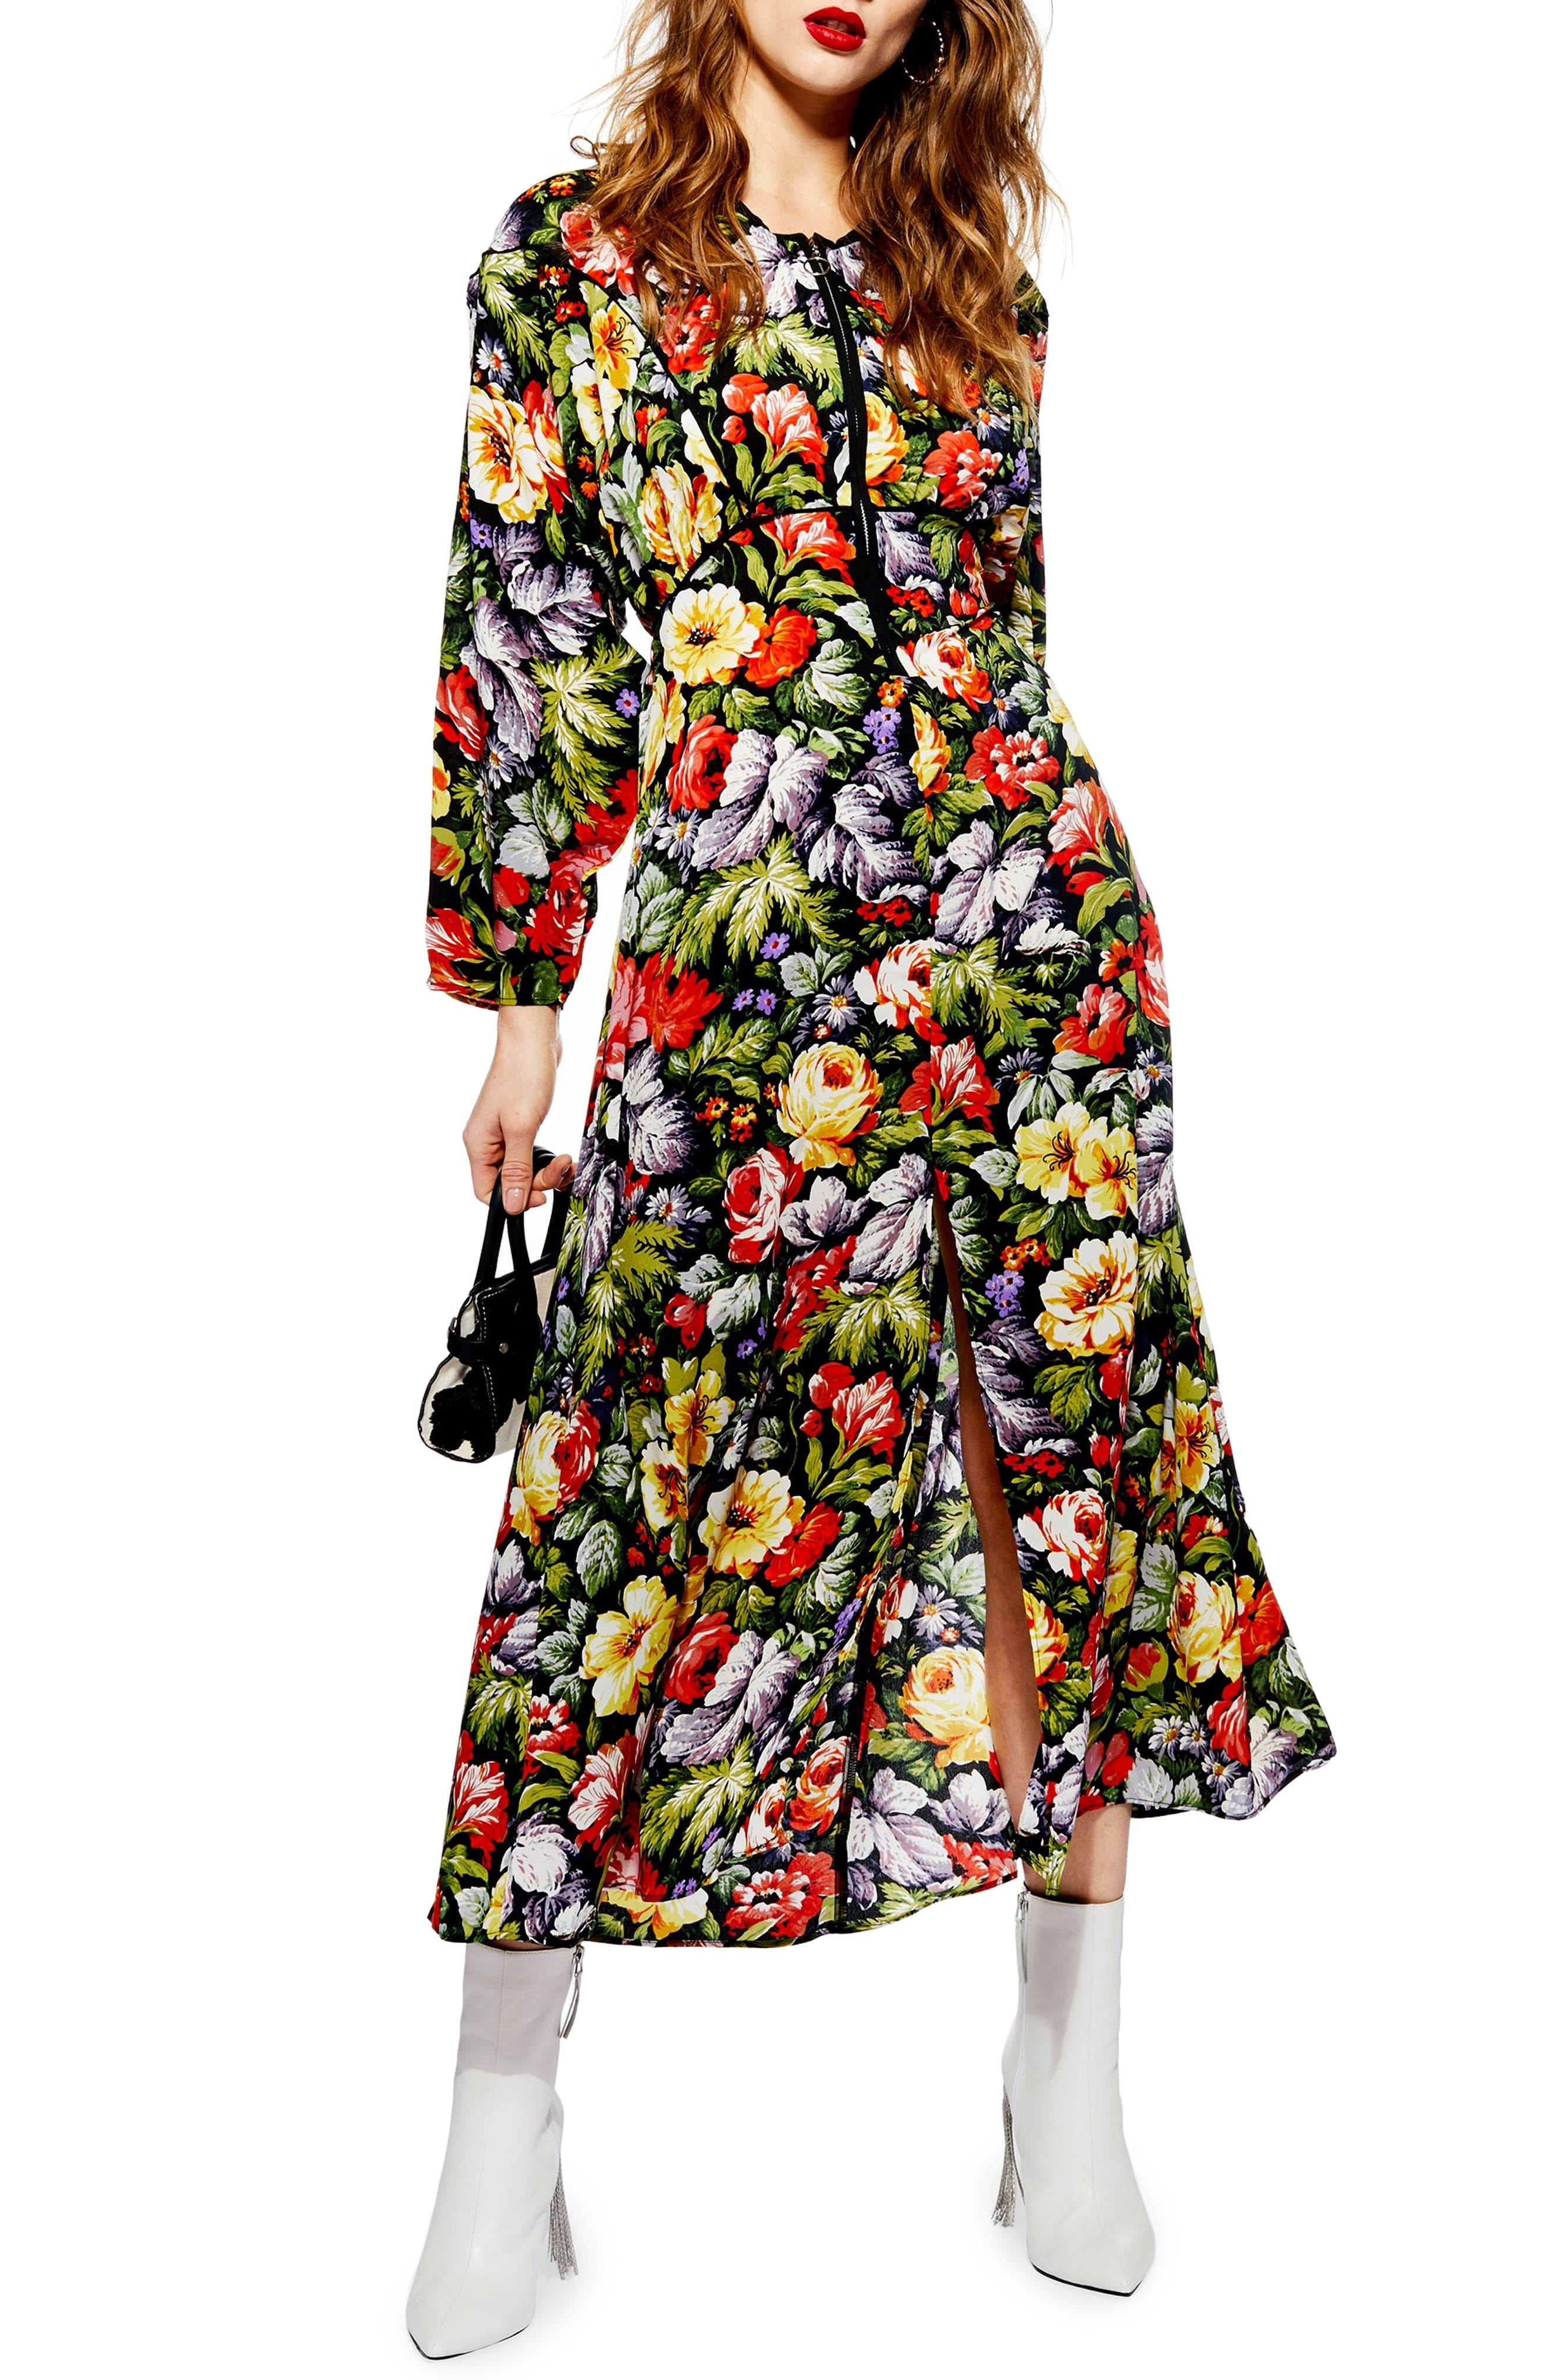 Topshop Floral Zip Through Midi Dress, US (fits like 0) - Green